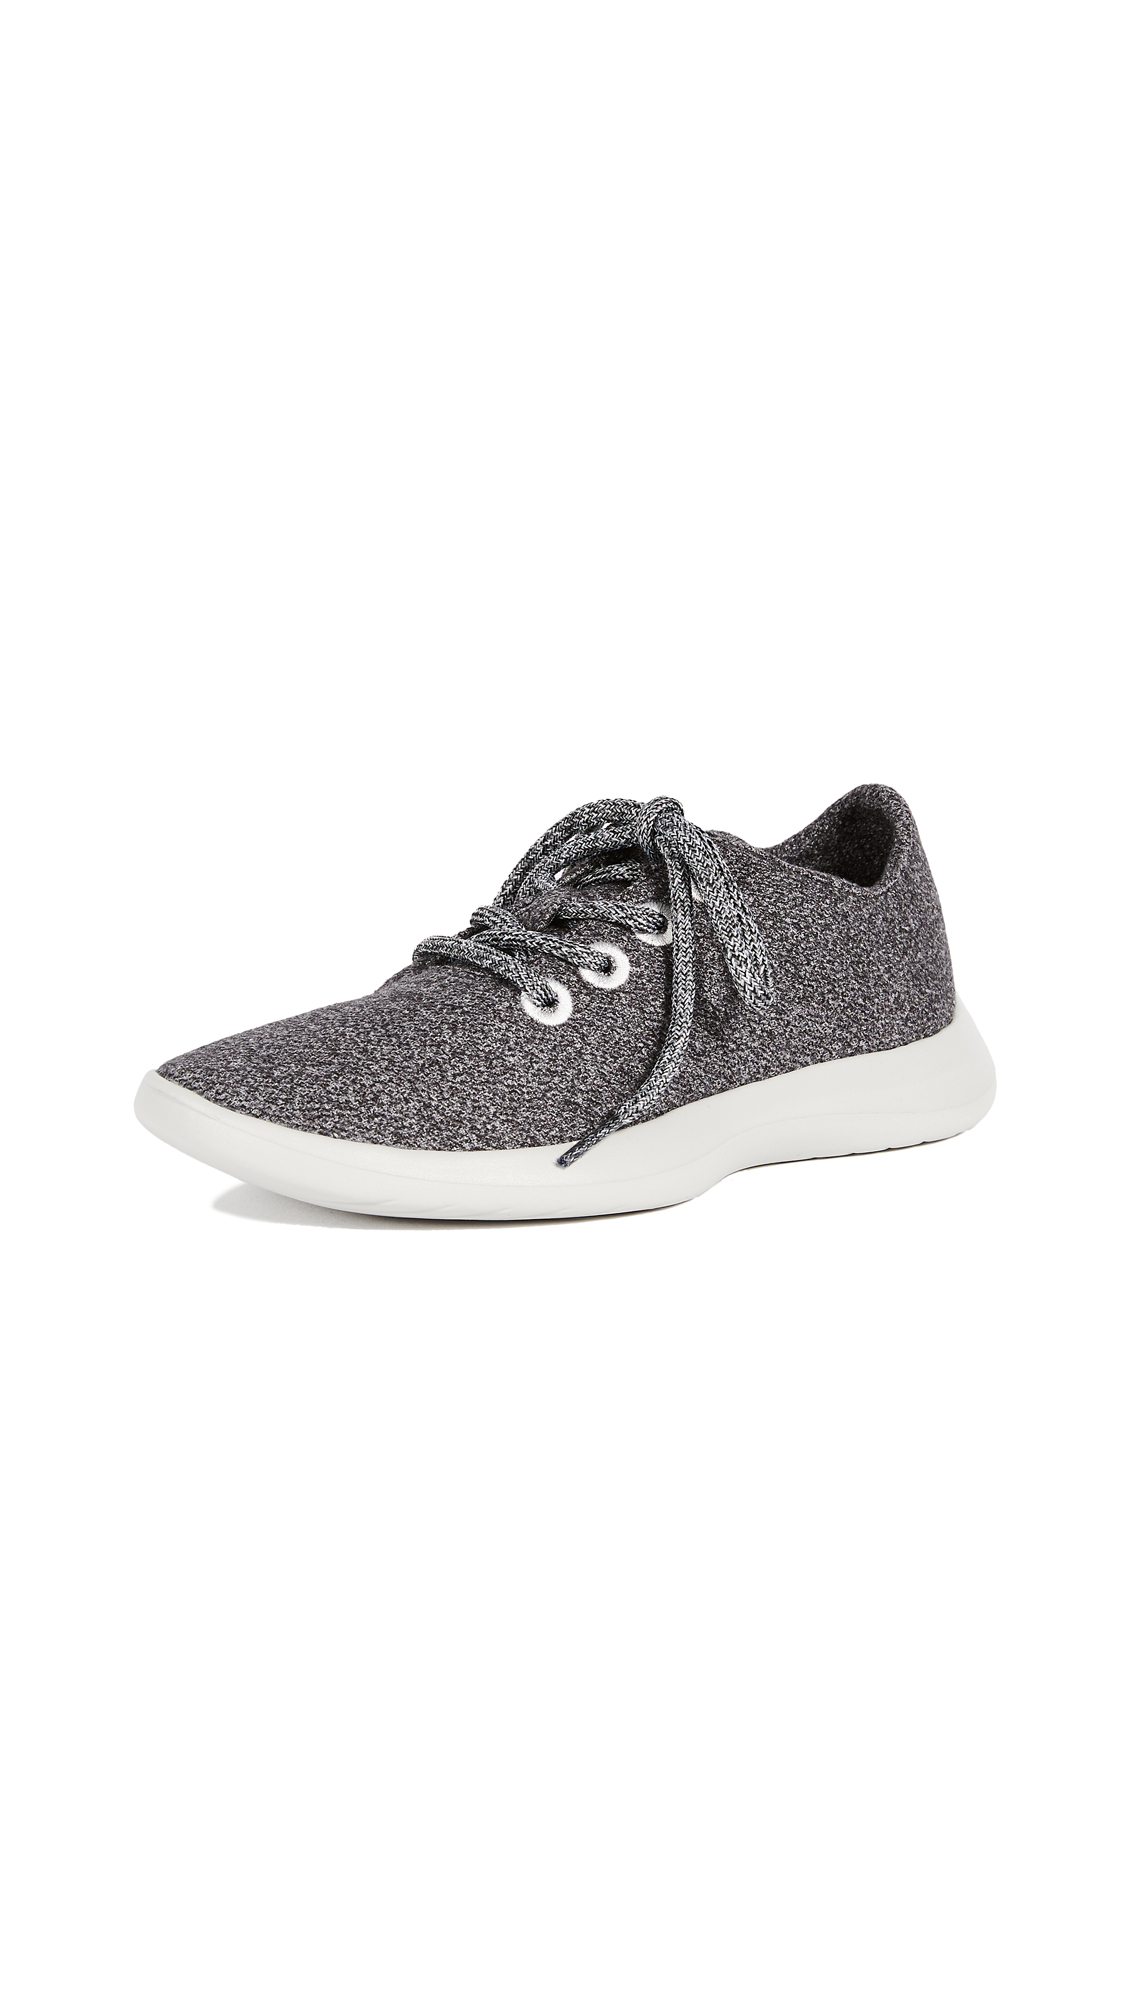 Steven Traveler Lace Up Sneakers - Grey